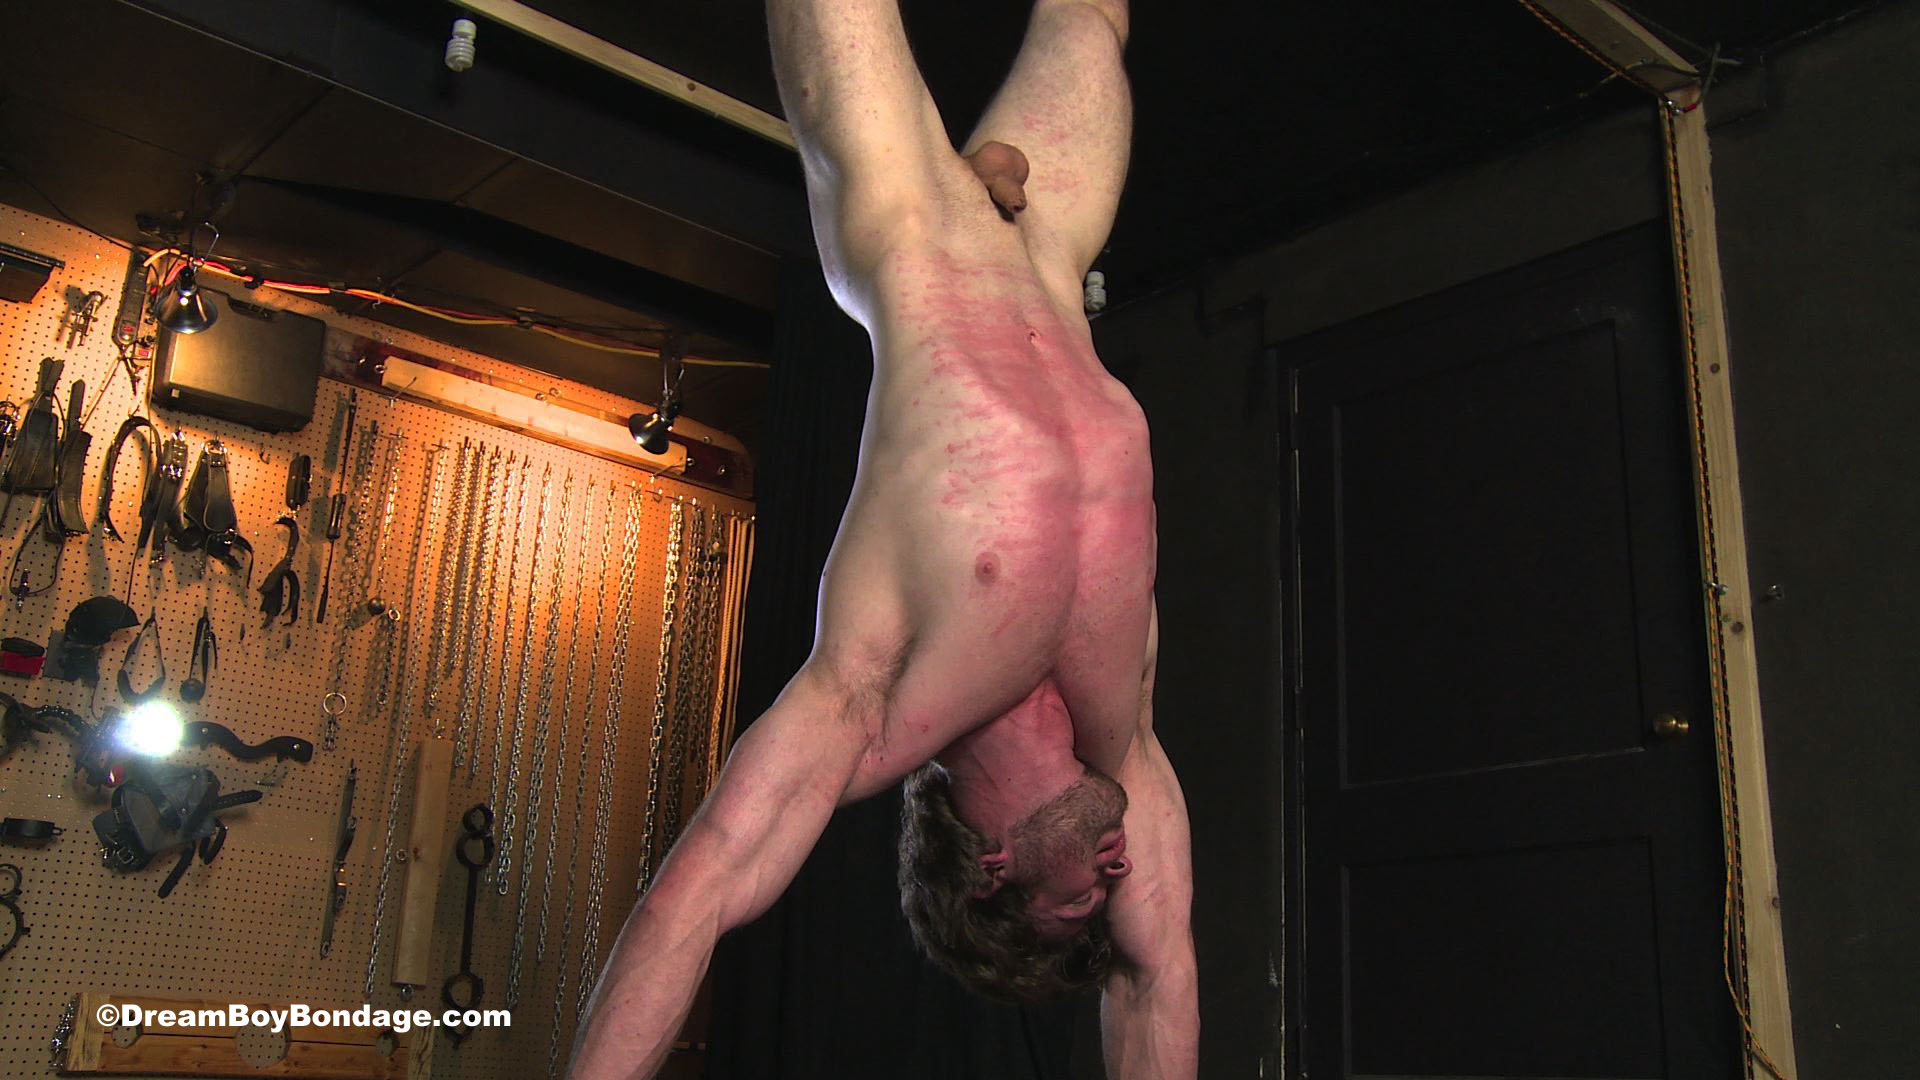 Gay boy bondage trailer when straight 4